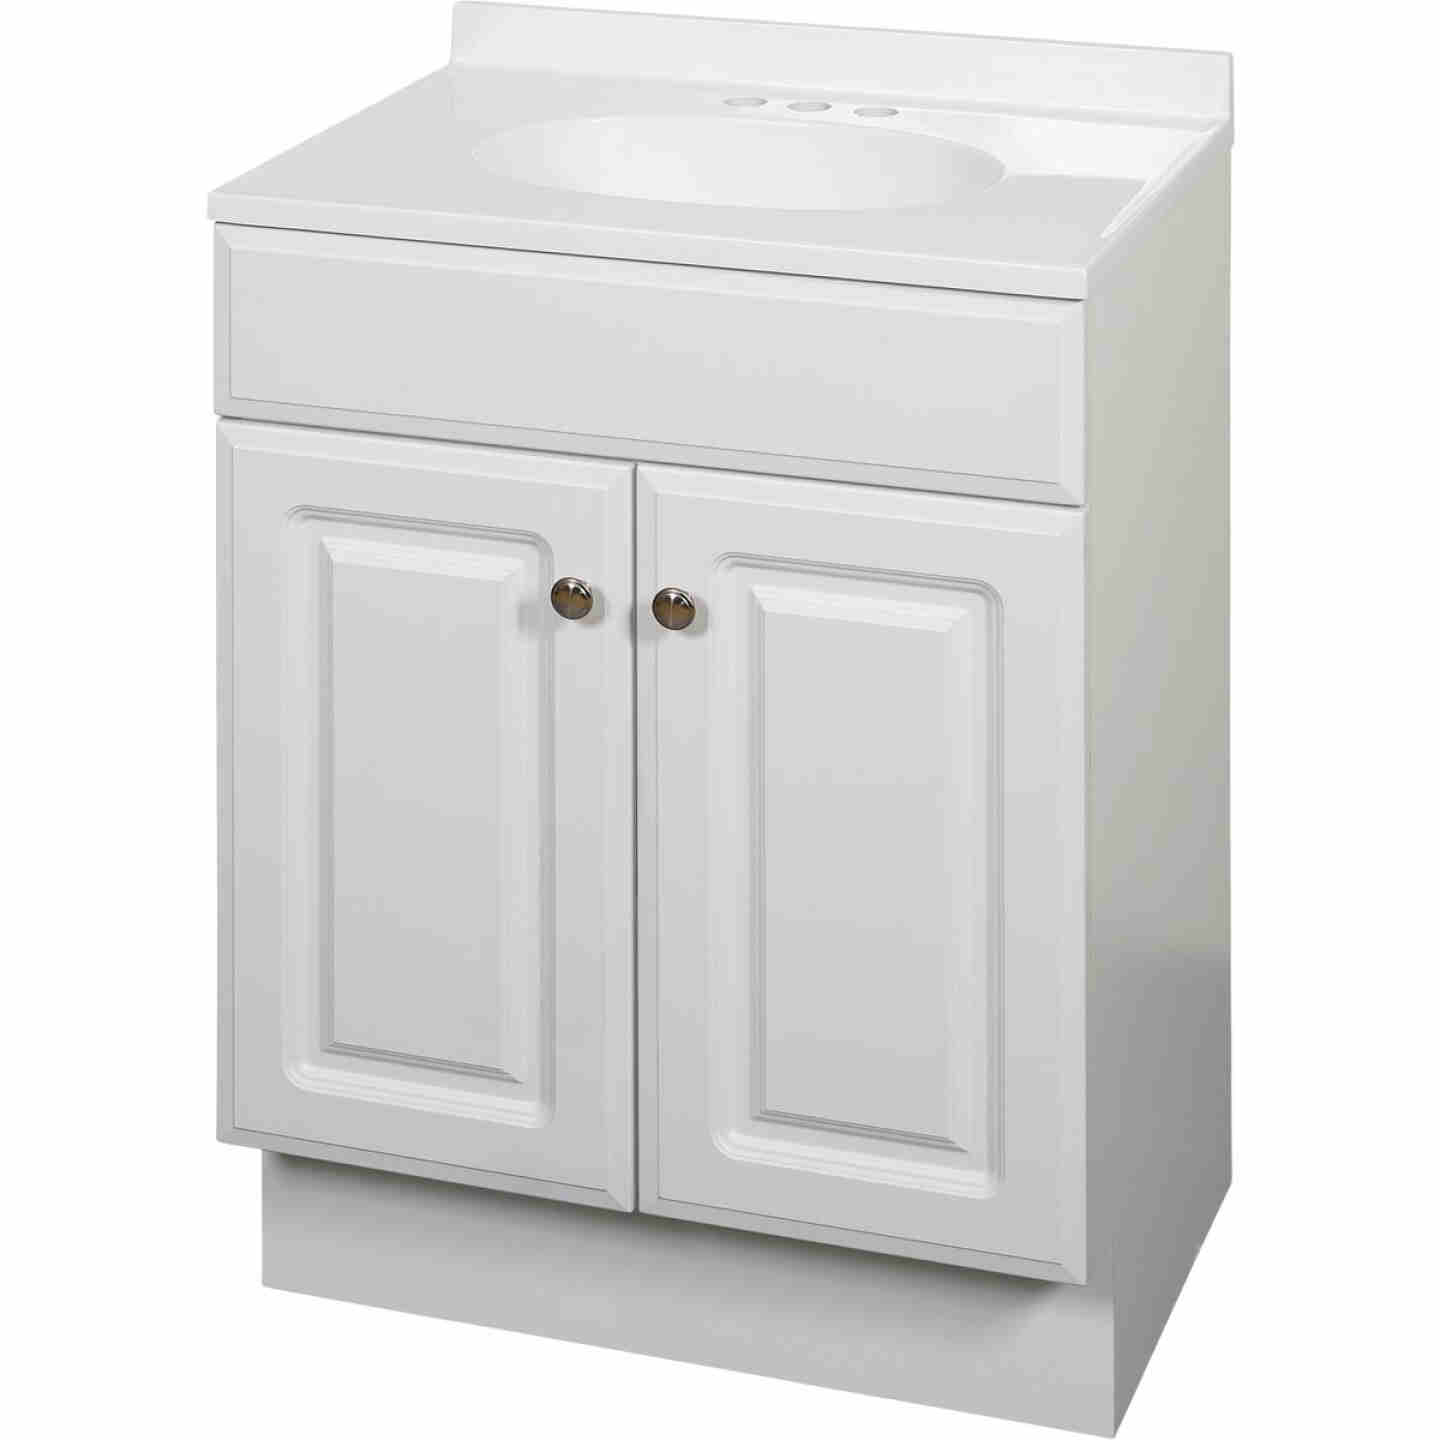 Zenith Zenna Home White 24 In. W x 35 In. H x 18 In. D Vanity with White Cultured Marble Top Image 1